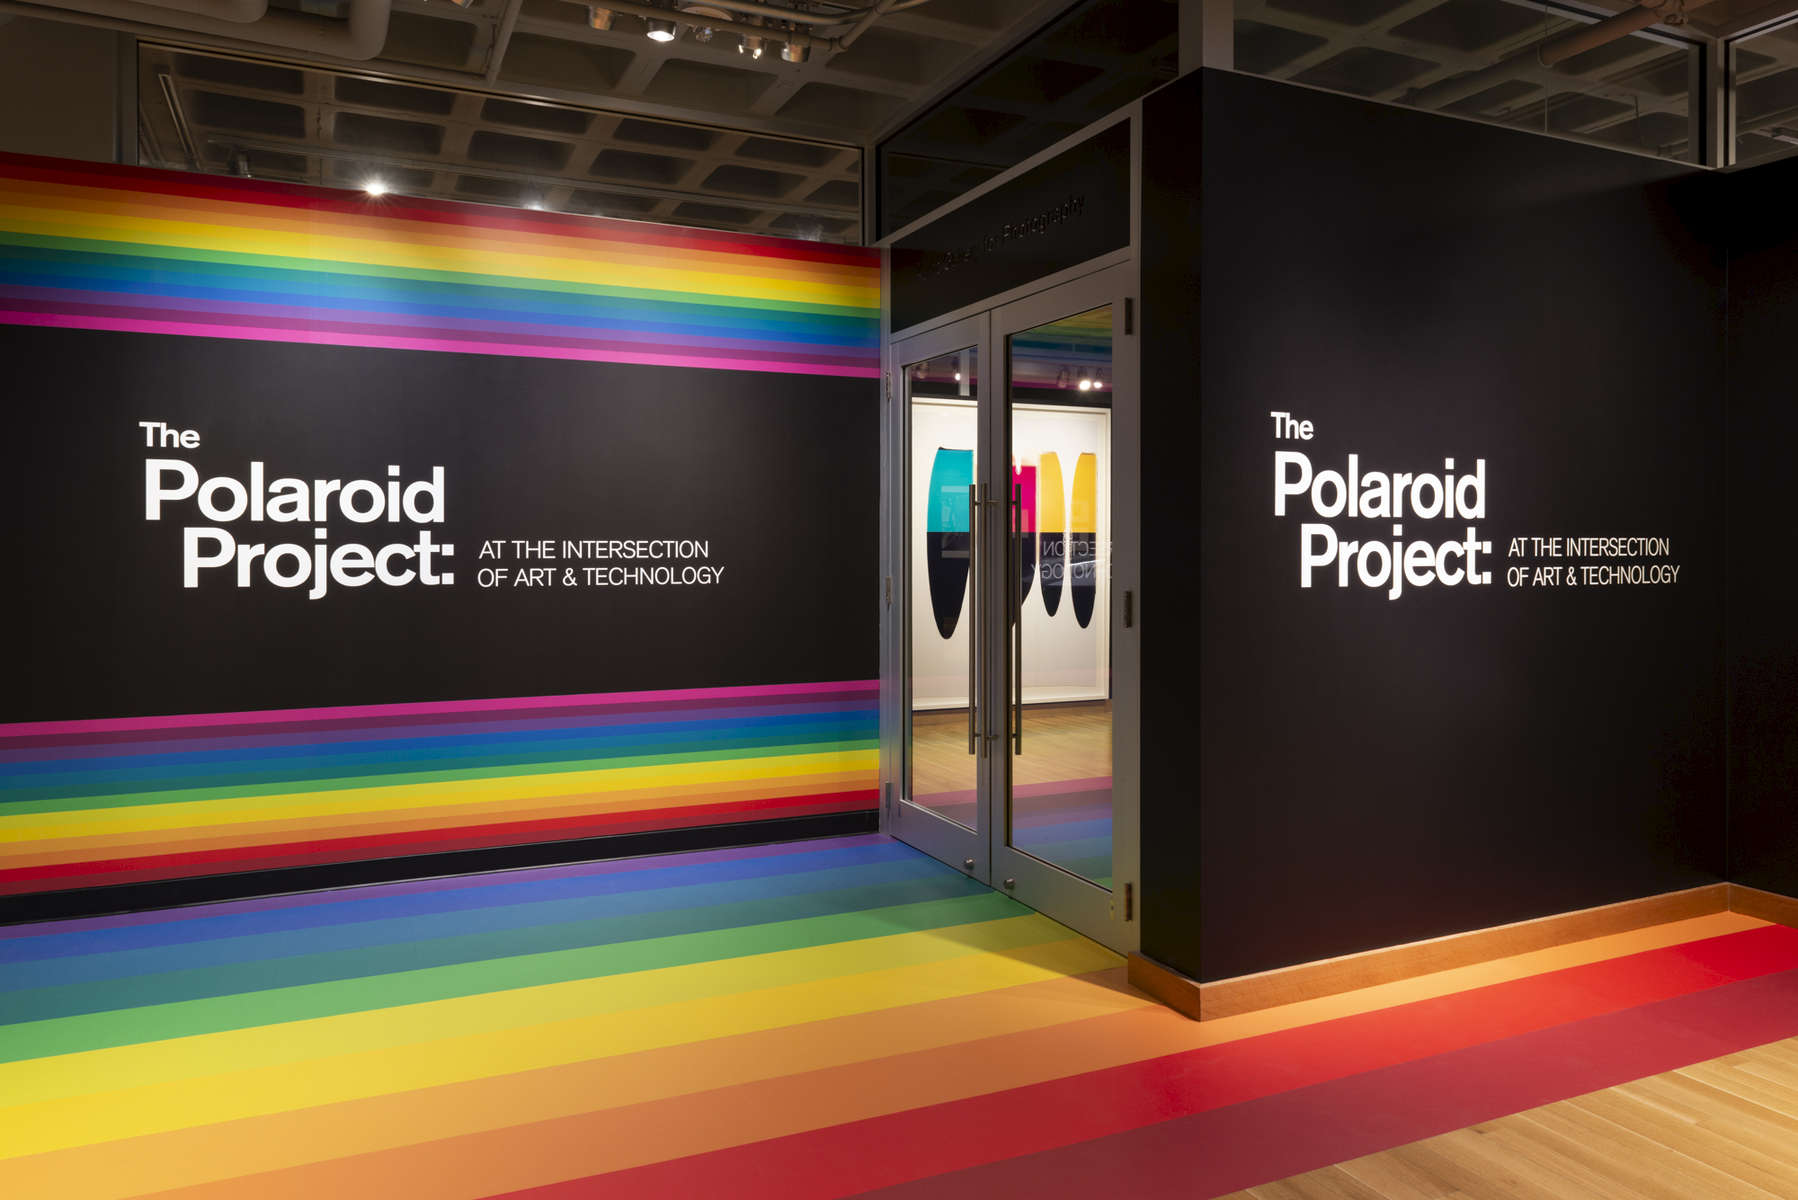 "The Polaroid Project: At the Intersection of Art and Technology was an exhibition in two adjacent gallery spaces that explored various dimensions of the relationship between the art and technology of Polaroids, with over 200 photographs and 100 objects. To unite the two galleries, and the art and the technology, the iconic Polaroid spectrum rainbow logo was translated into a continuous spine through the centerline of the exhibition, tying together the 2 gallery spaces, display cases, immersive seating, and a connecting wall. The display cases featured artifacts including prototypes, components, and cameras tracing the Polaroid company's many technological innovations over time. Photographs were displayed on ""baffle"" walls inspired by the interior of a 20x24 large format instant camera, which was also prominently displayed in the exhibition."